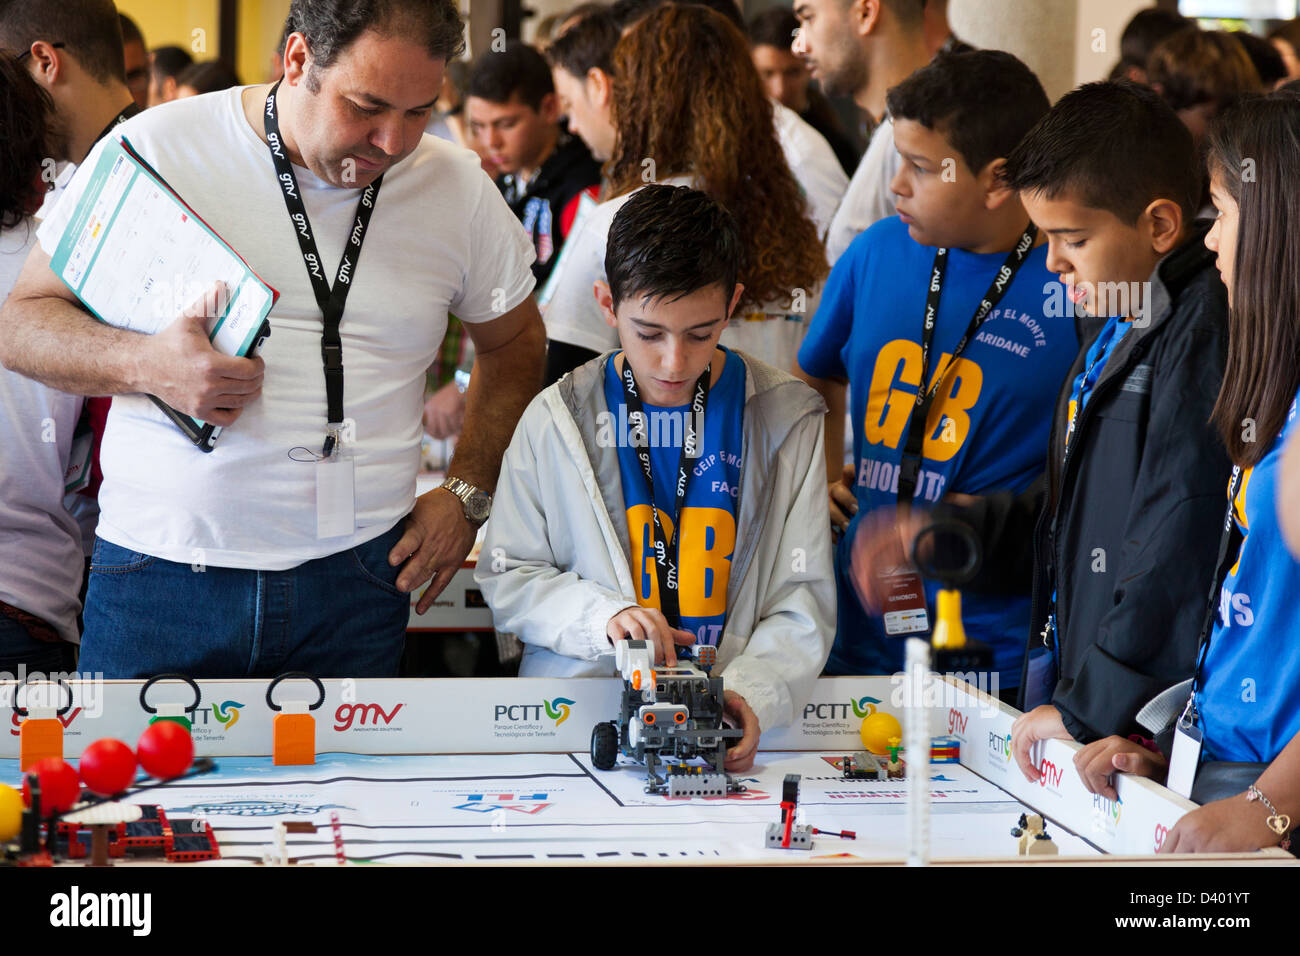 Schoolchildren at a Lego robotics competition on Tenerife, Canary Islands, Spain. - Stock Image